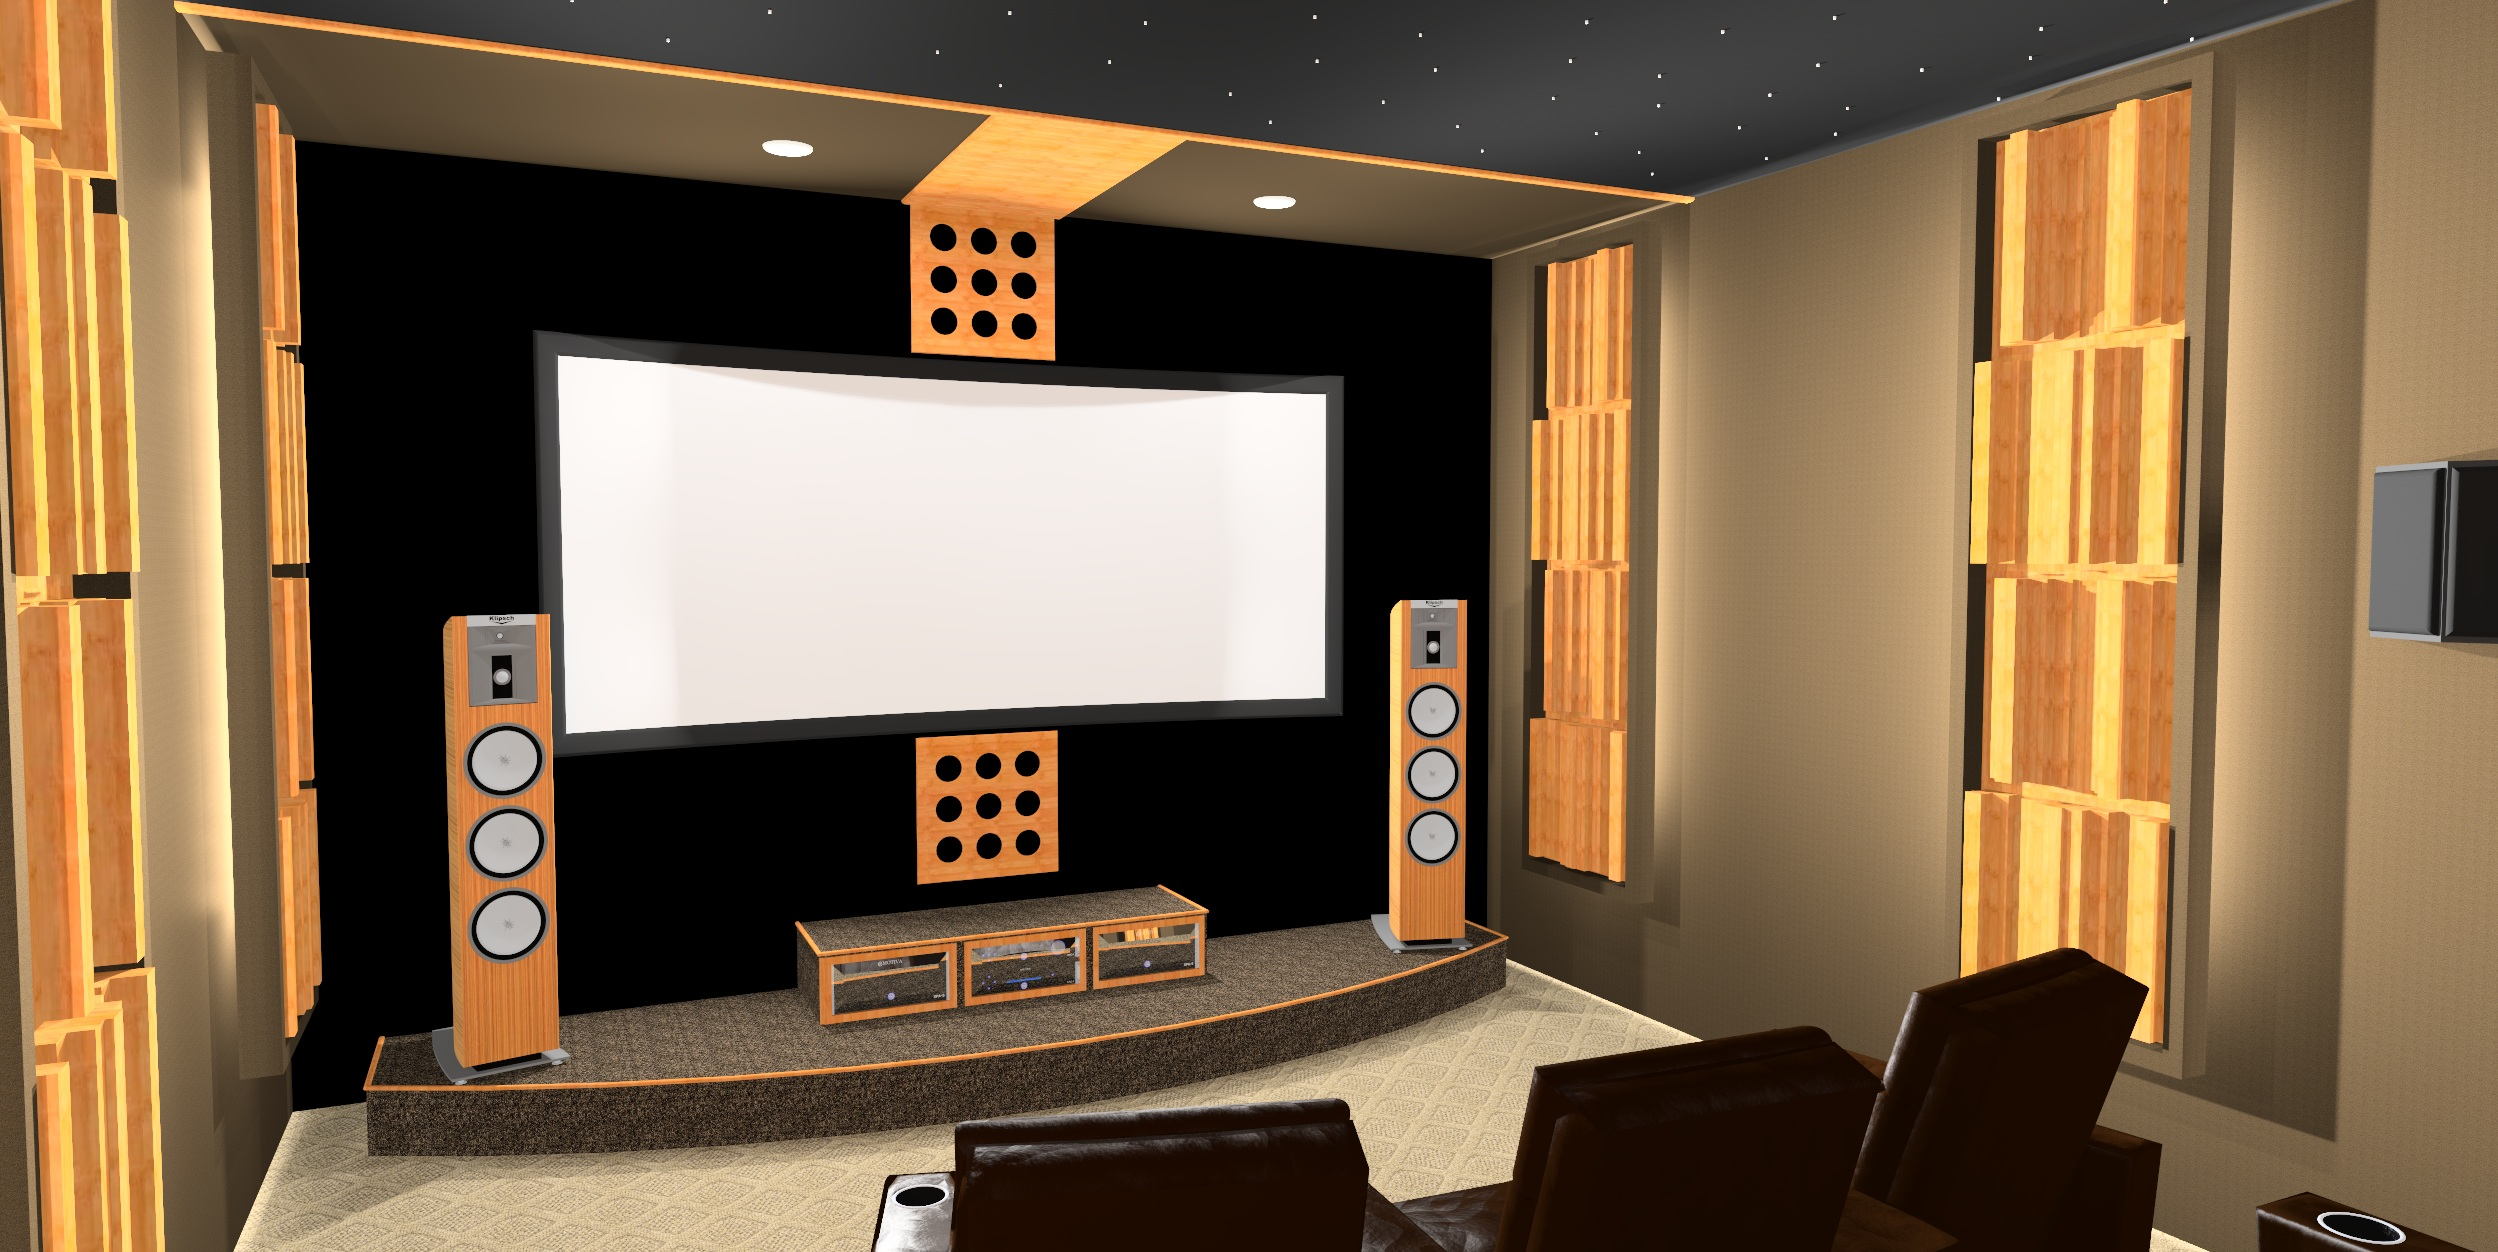 Image likewise Cobham likewise Behringer Pmp Mixer Angle as well Image further Avr Back Dvhamaster. on subwoofers product